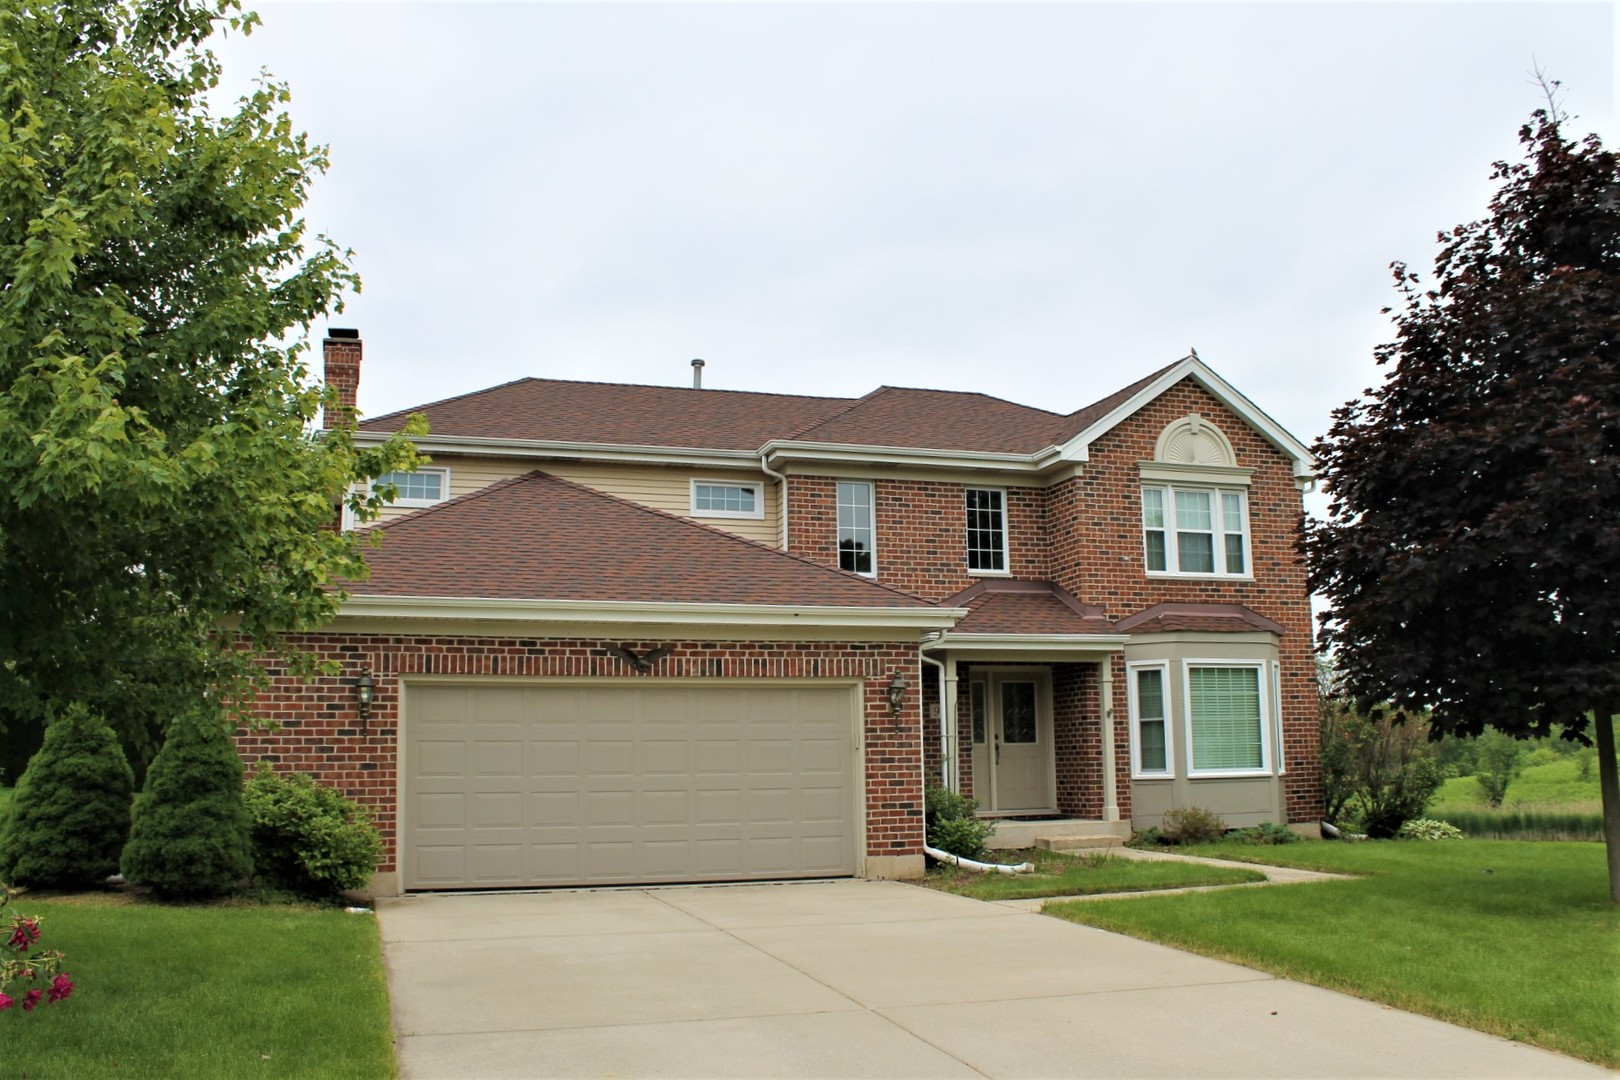 Photo for 90 Newberry Court, Elgin, IL 60124 (MLS # 10642323)